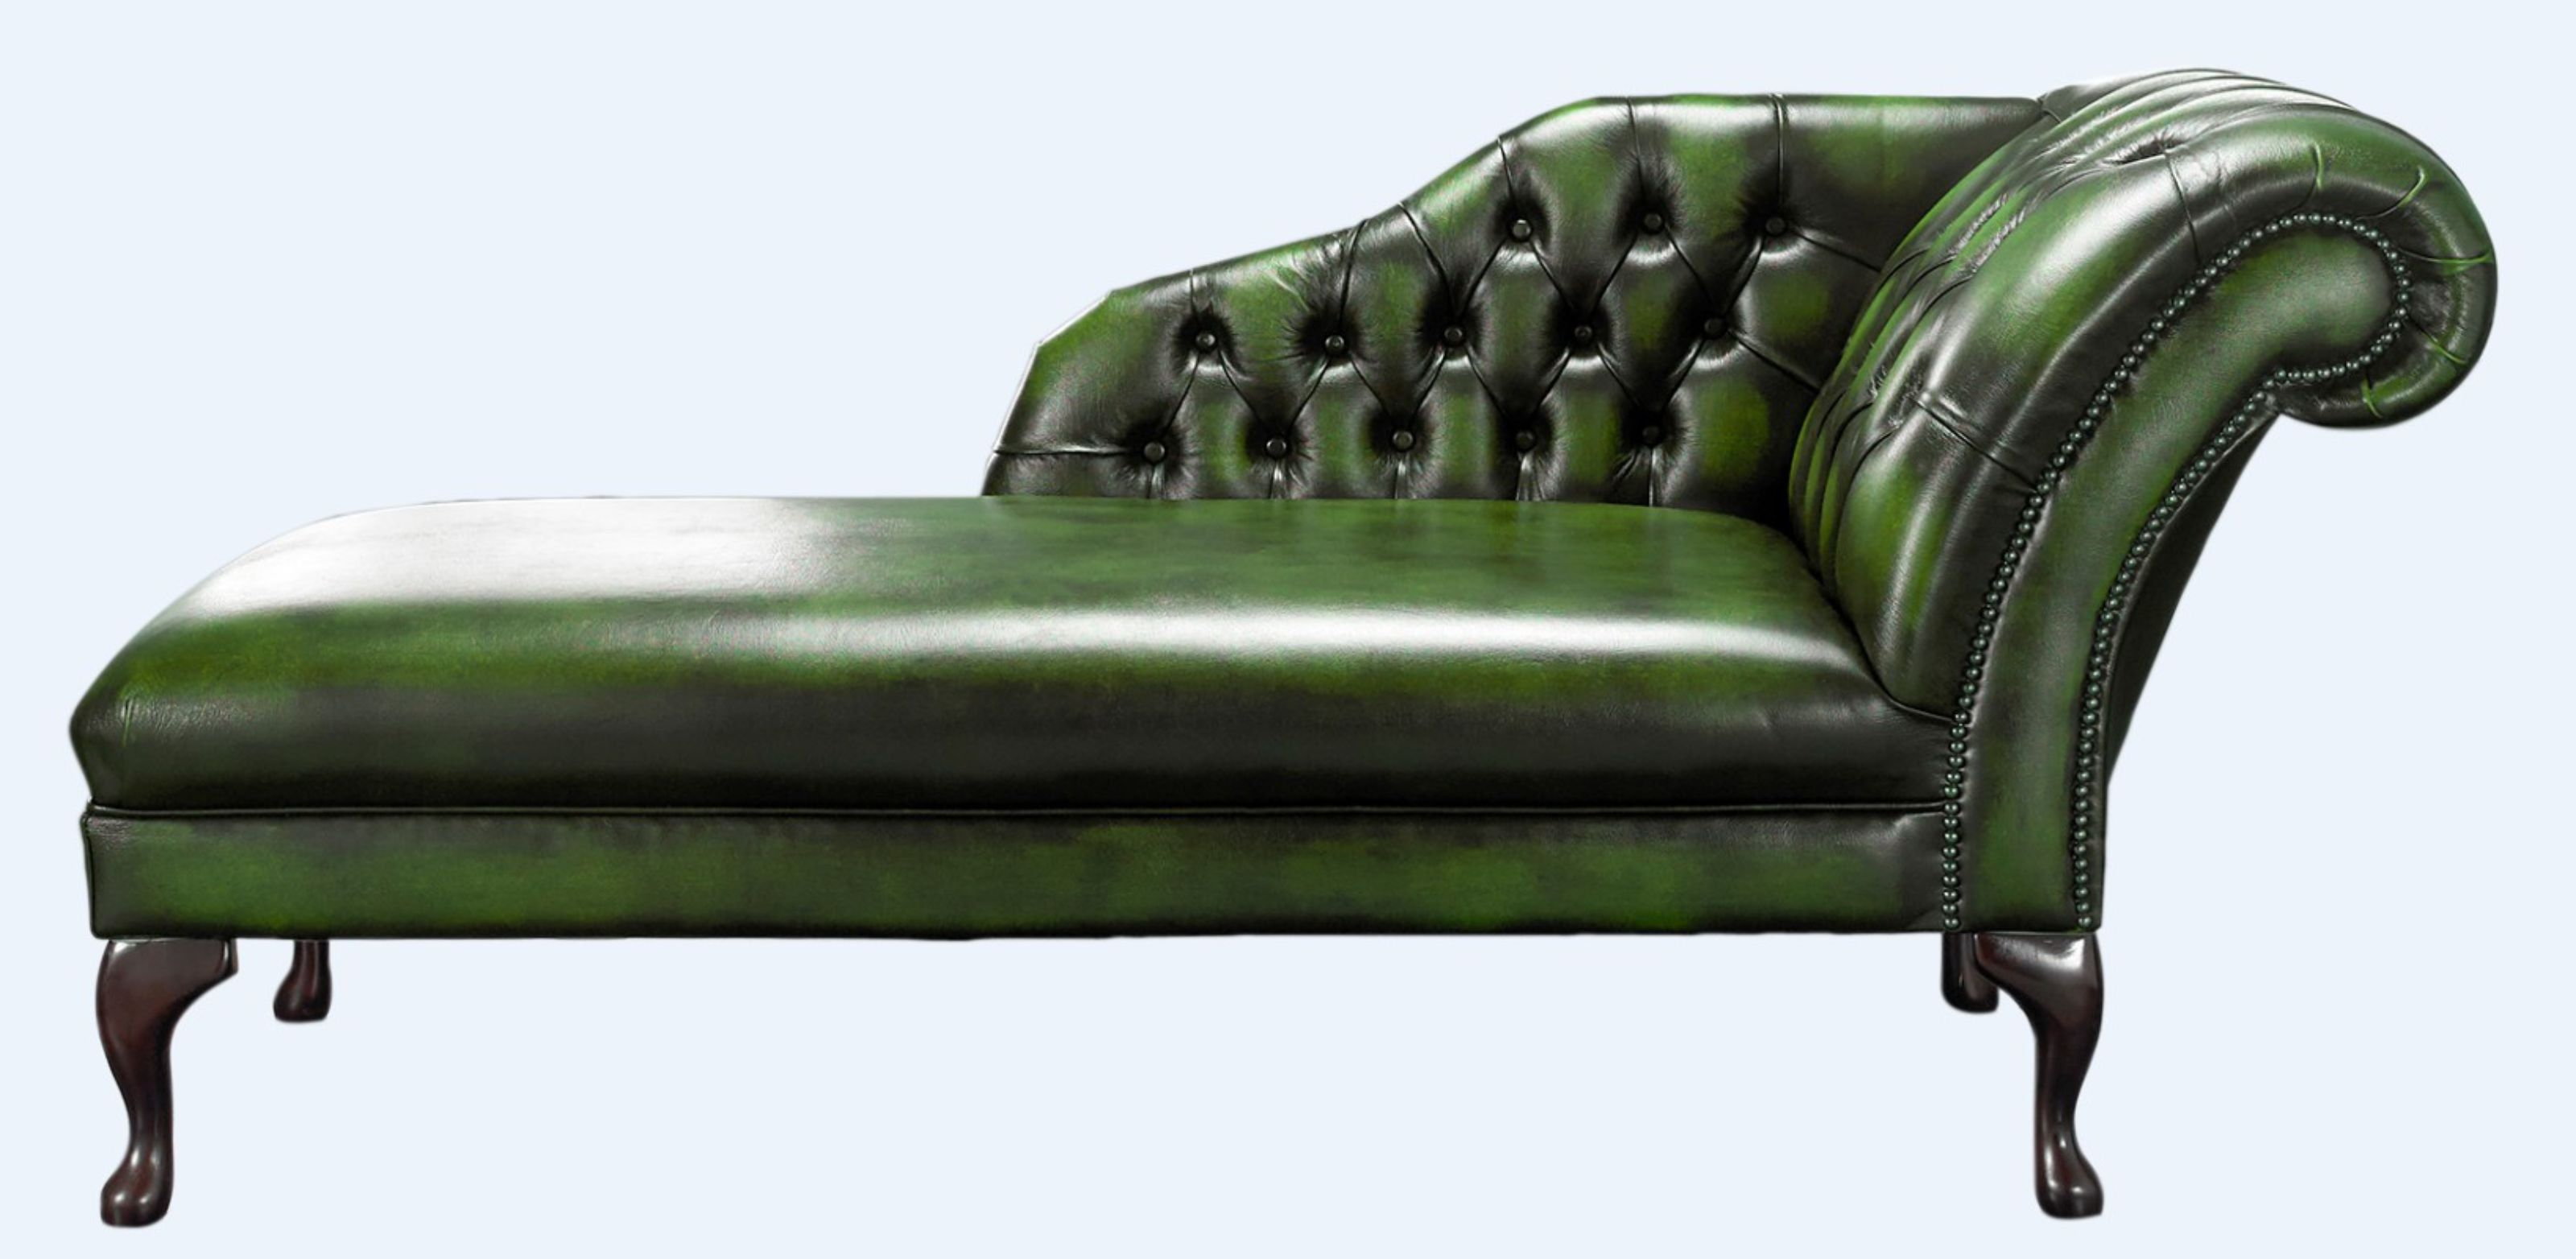 Green Chesterfield Chaise Lounge day Bed | DesignerSofas4U on chaise sofa sleeper, chaise furniture, chaise recliner chair,